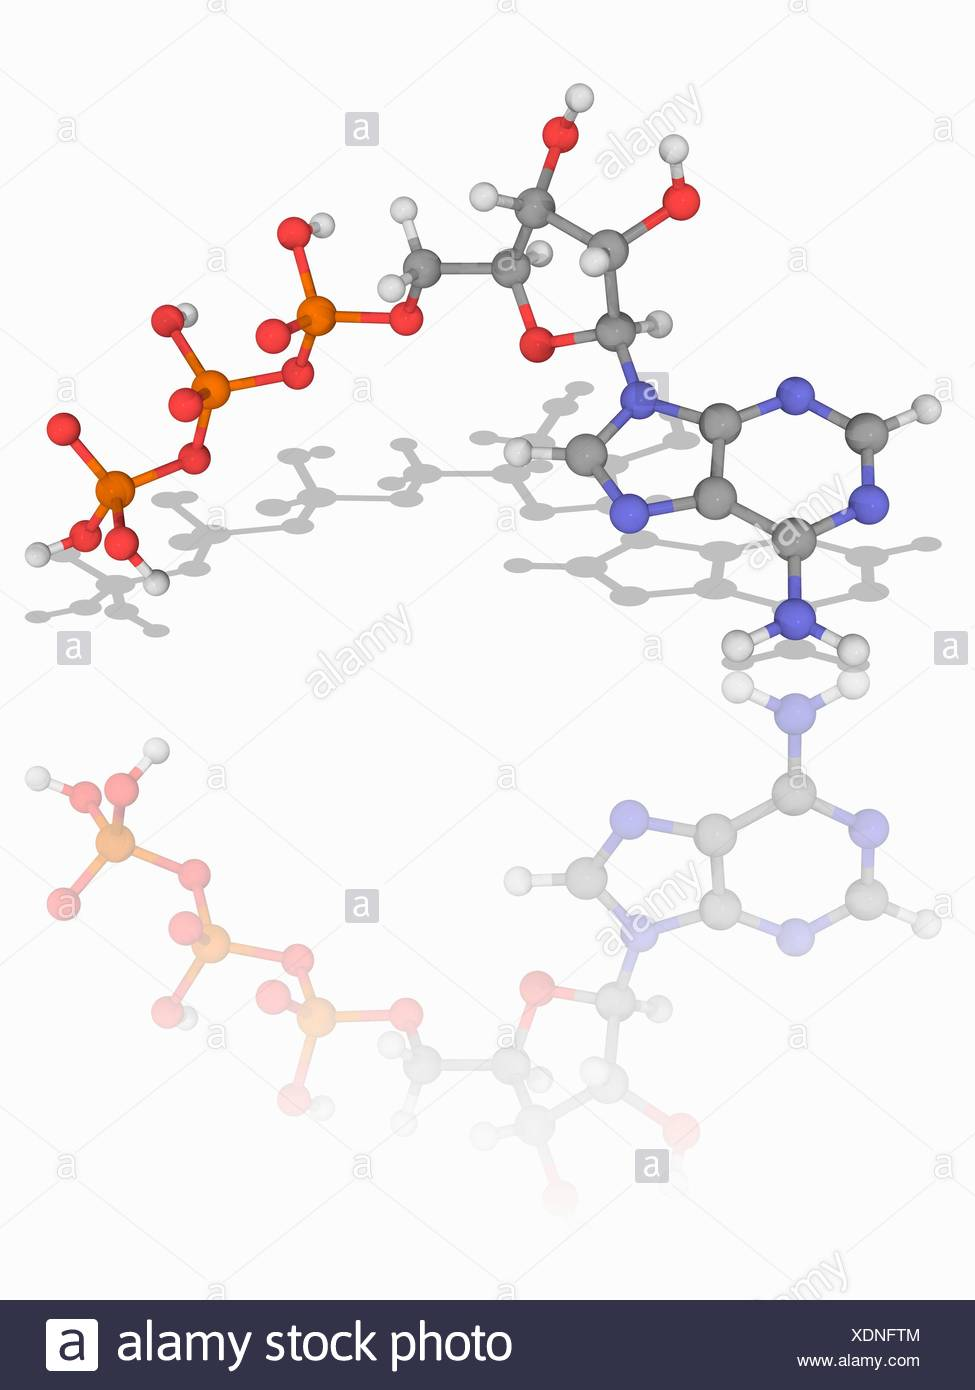 Adenosine triphosphate. Molecular model of the coenzyme adenosine triphosphate (ATP, C10.H16.N5.O13.P3). This molecule is a carrier of metabolic energy in cells. Atoms are represented as spheres and are colour-coded: carbon (grey), hydrogen (white), nitrogen (blue), oxygen (red) and phosphorus (orange). Illustration. Stock Photo